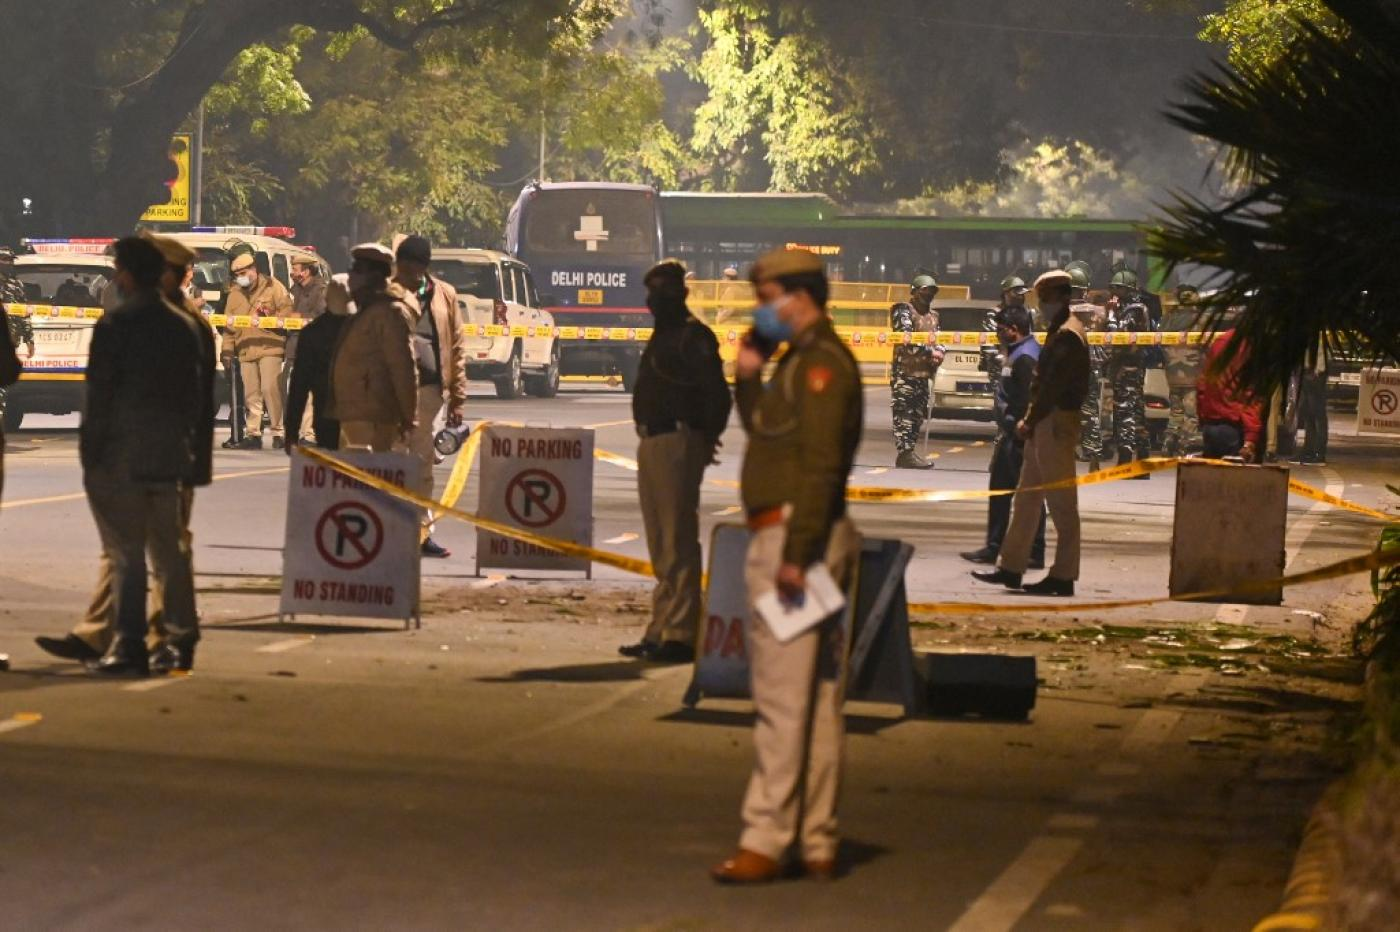 Iran's Quds force played role in blast near Israeli embassy in New Delhi, probe claims